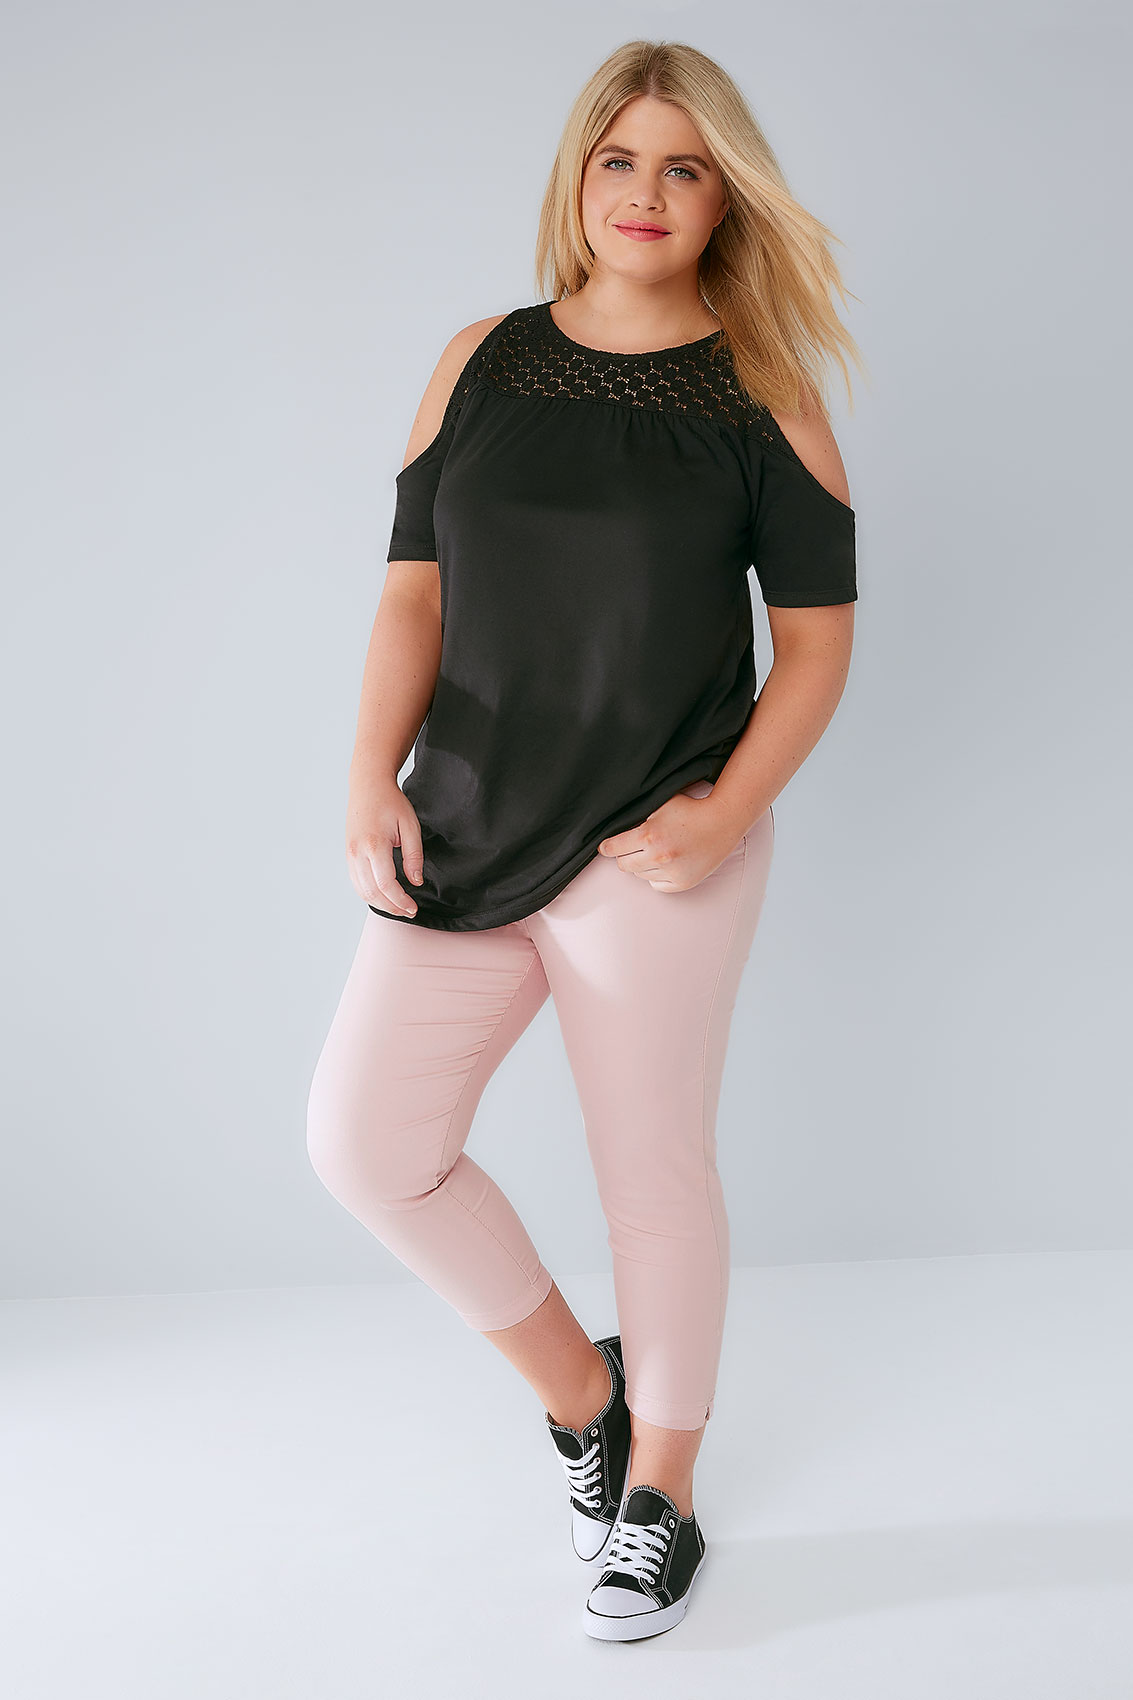 Jeggings show off every curve, so they can be a bit intimidating if you're full figured. Available in sizes 12W and up, our plus size jeggings feature fit details designed with your curves in mind, like elastic waistbands, high waists and extended rises so you can try out this trend with confidence.